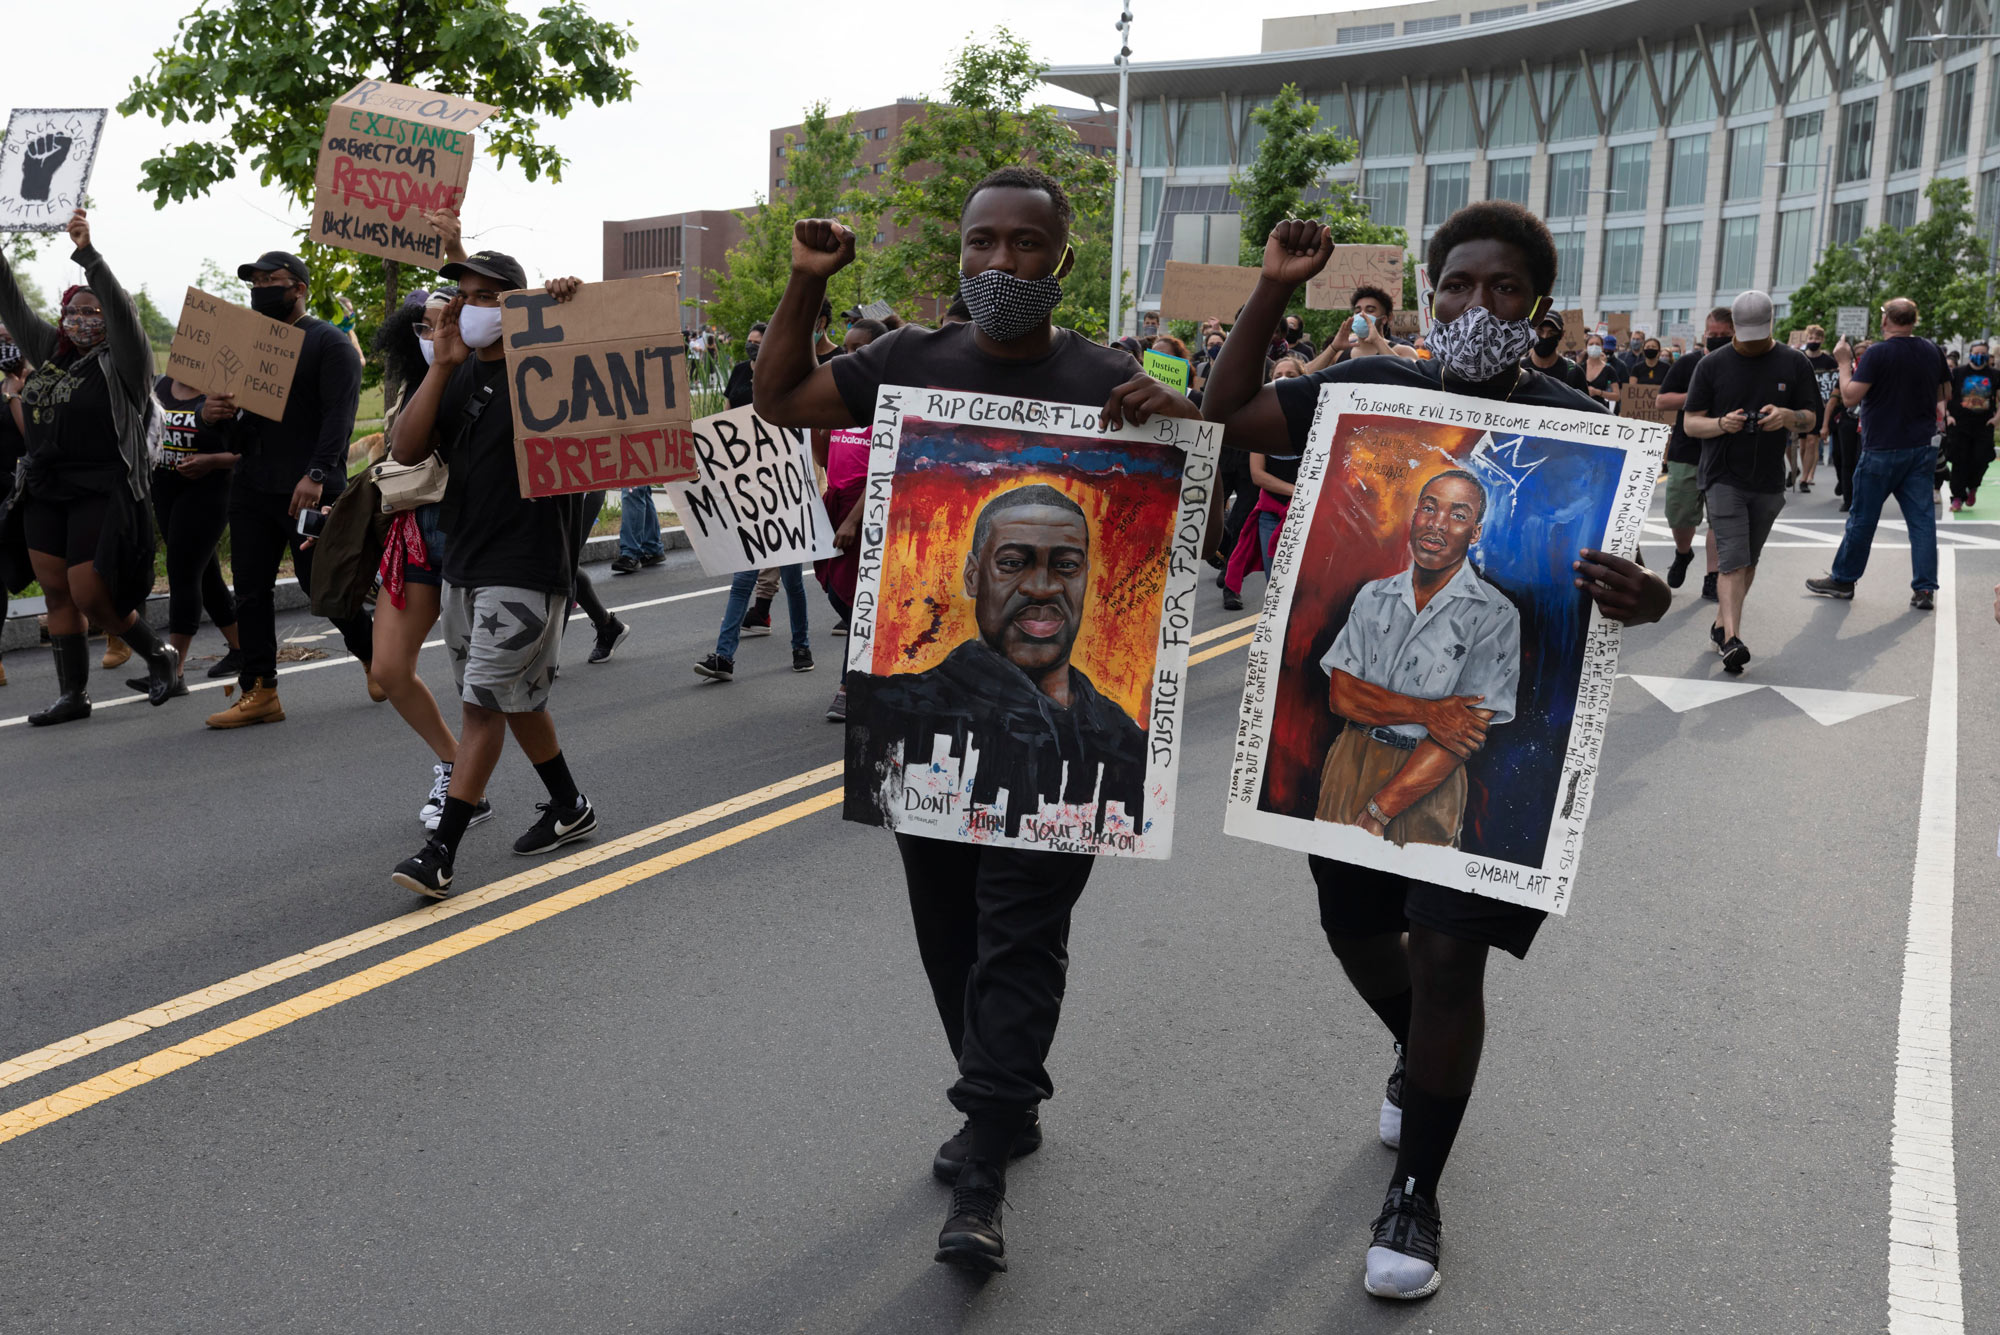 On Saturday, June 6, people carried signs protesting police brutality at the University of Massachusetts in Boston after the death of George Floyd.